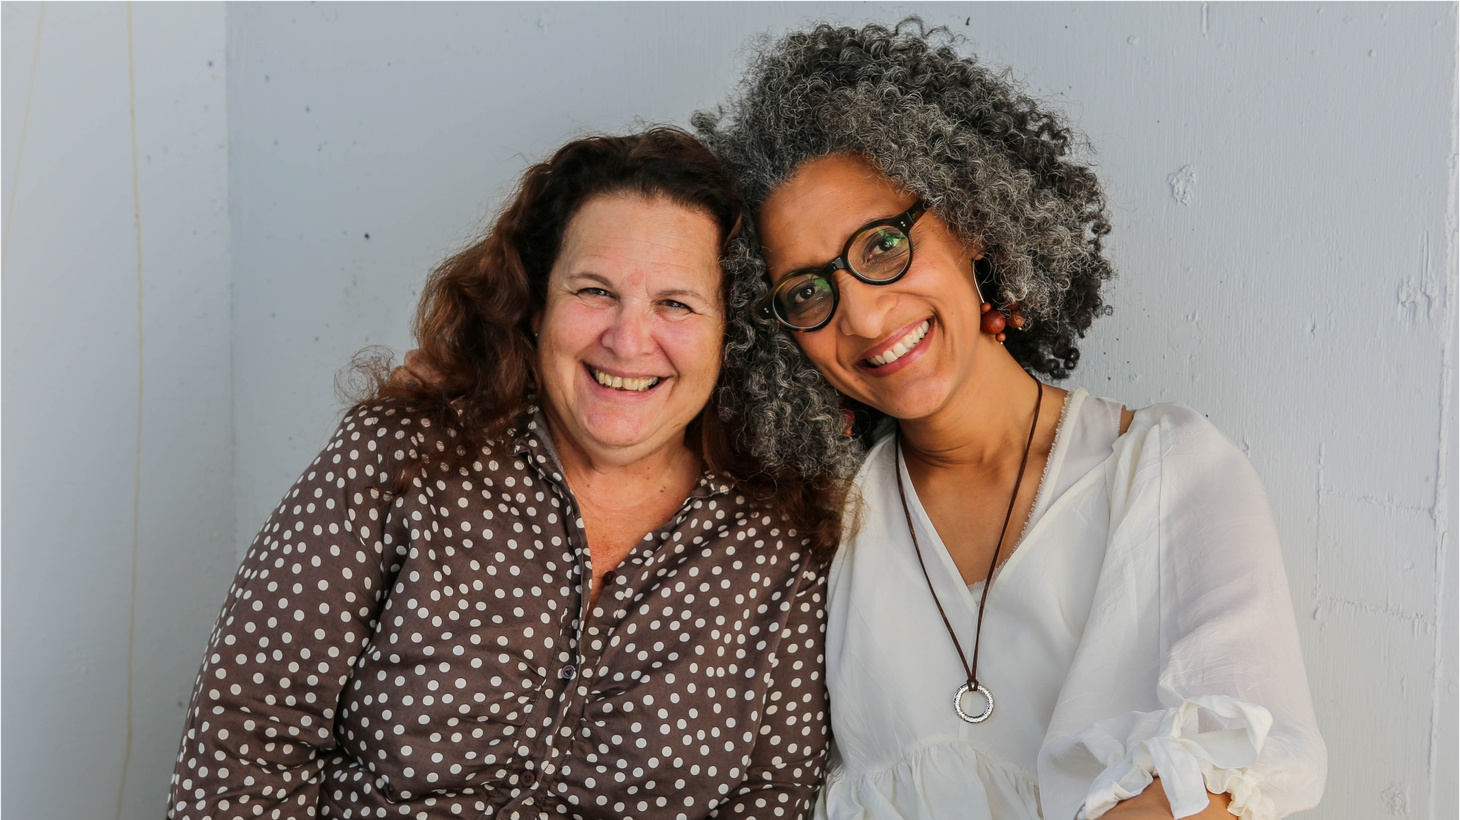 Friendship at first sight: Carla Hall meets Evan Kleiman at KCRW in Santa Monica.